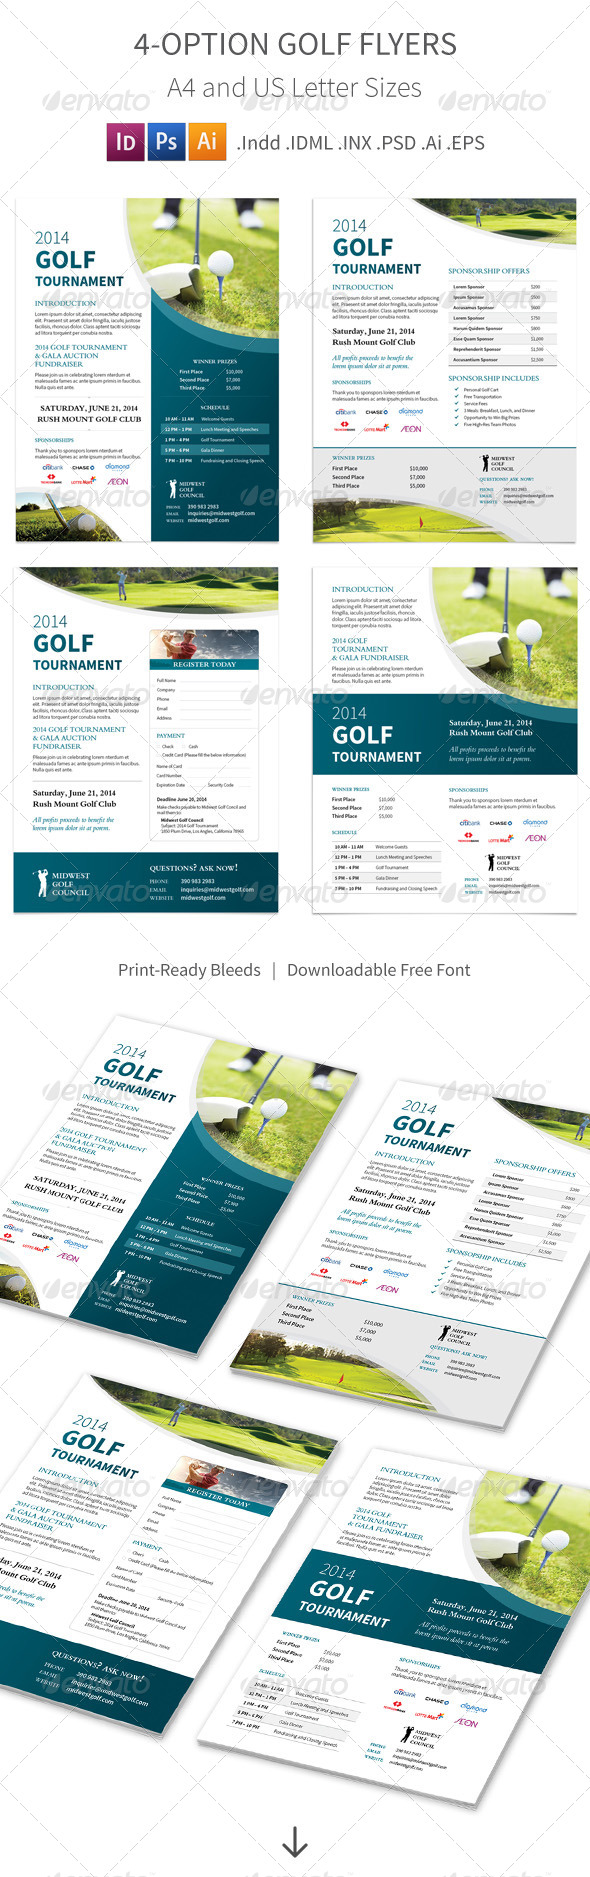 GraphicRiver Golf Tournament Flyers 4 Options 8503591